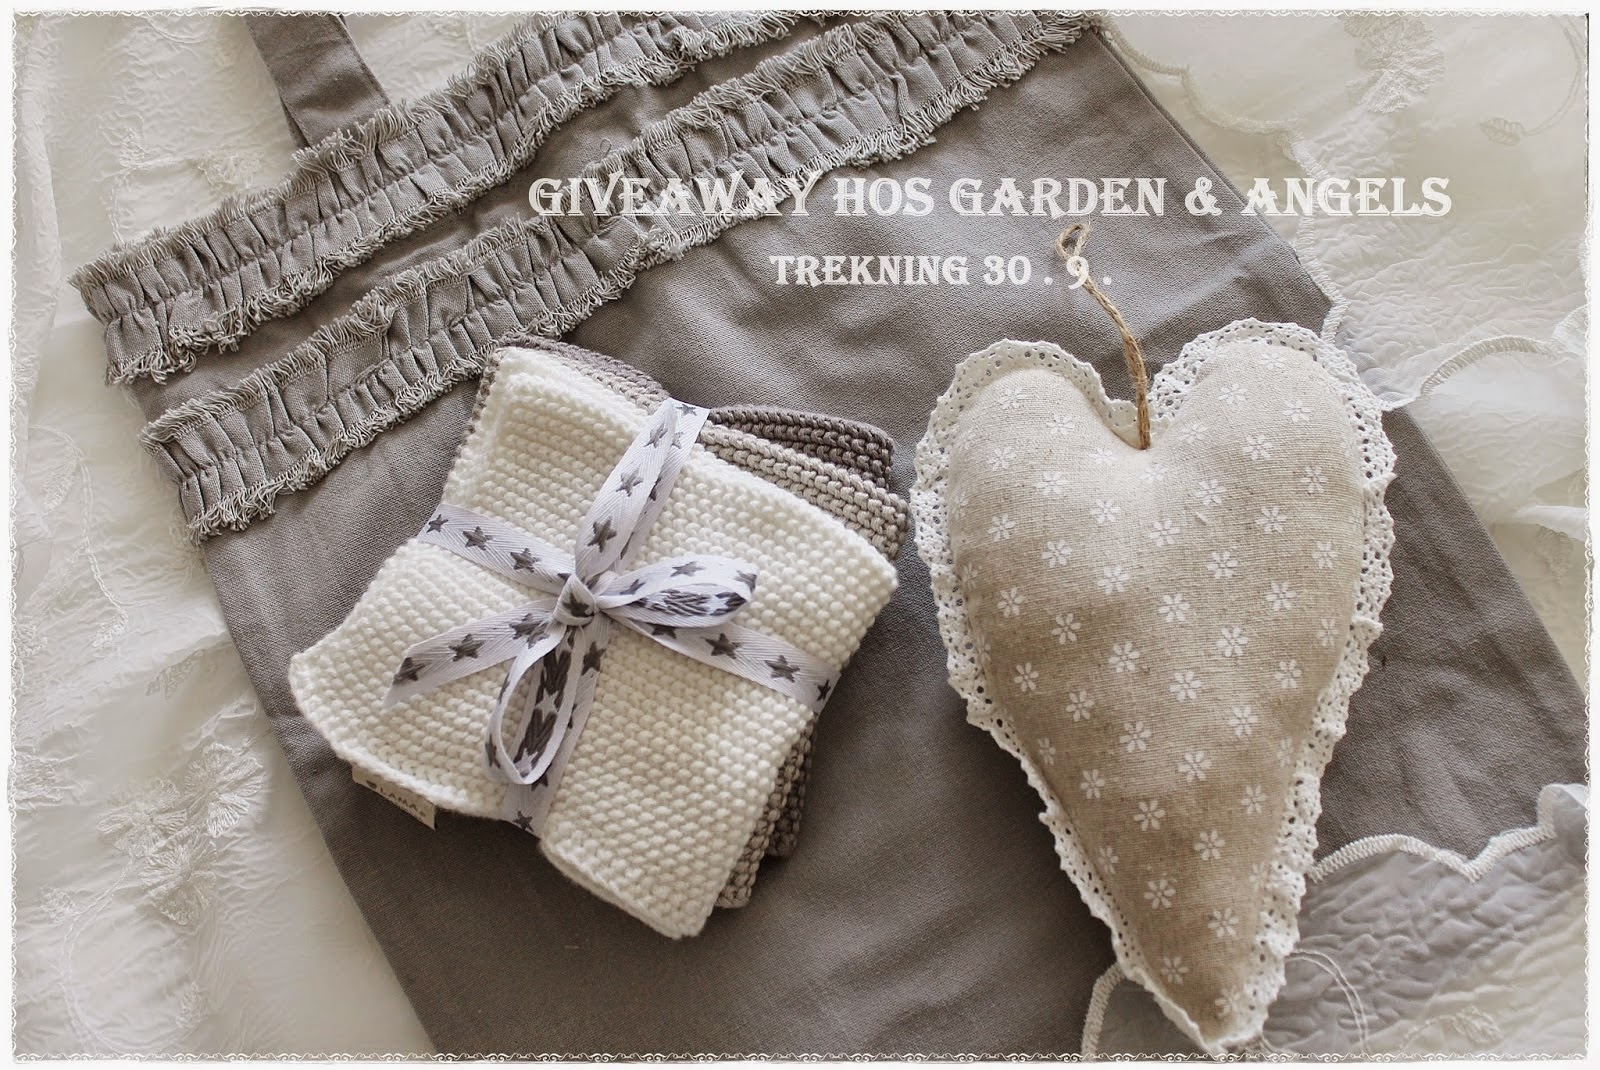 Give Away hos Garden & Angels